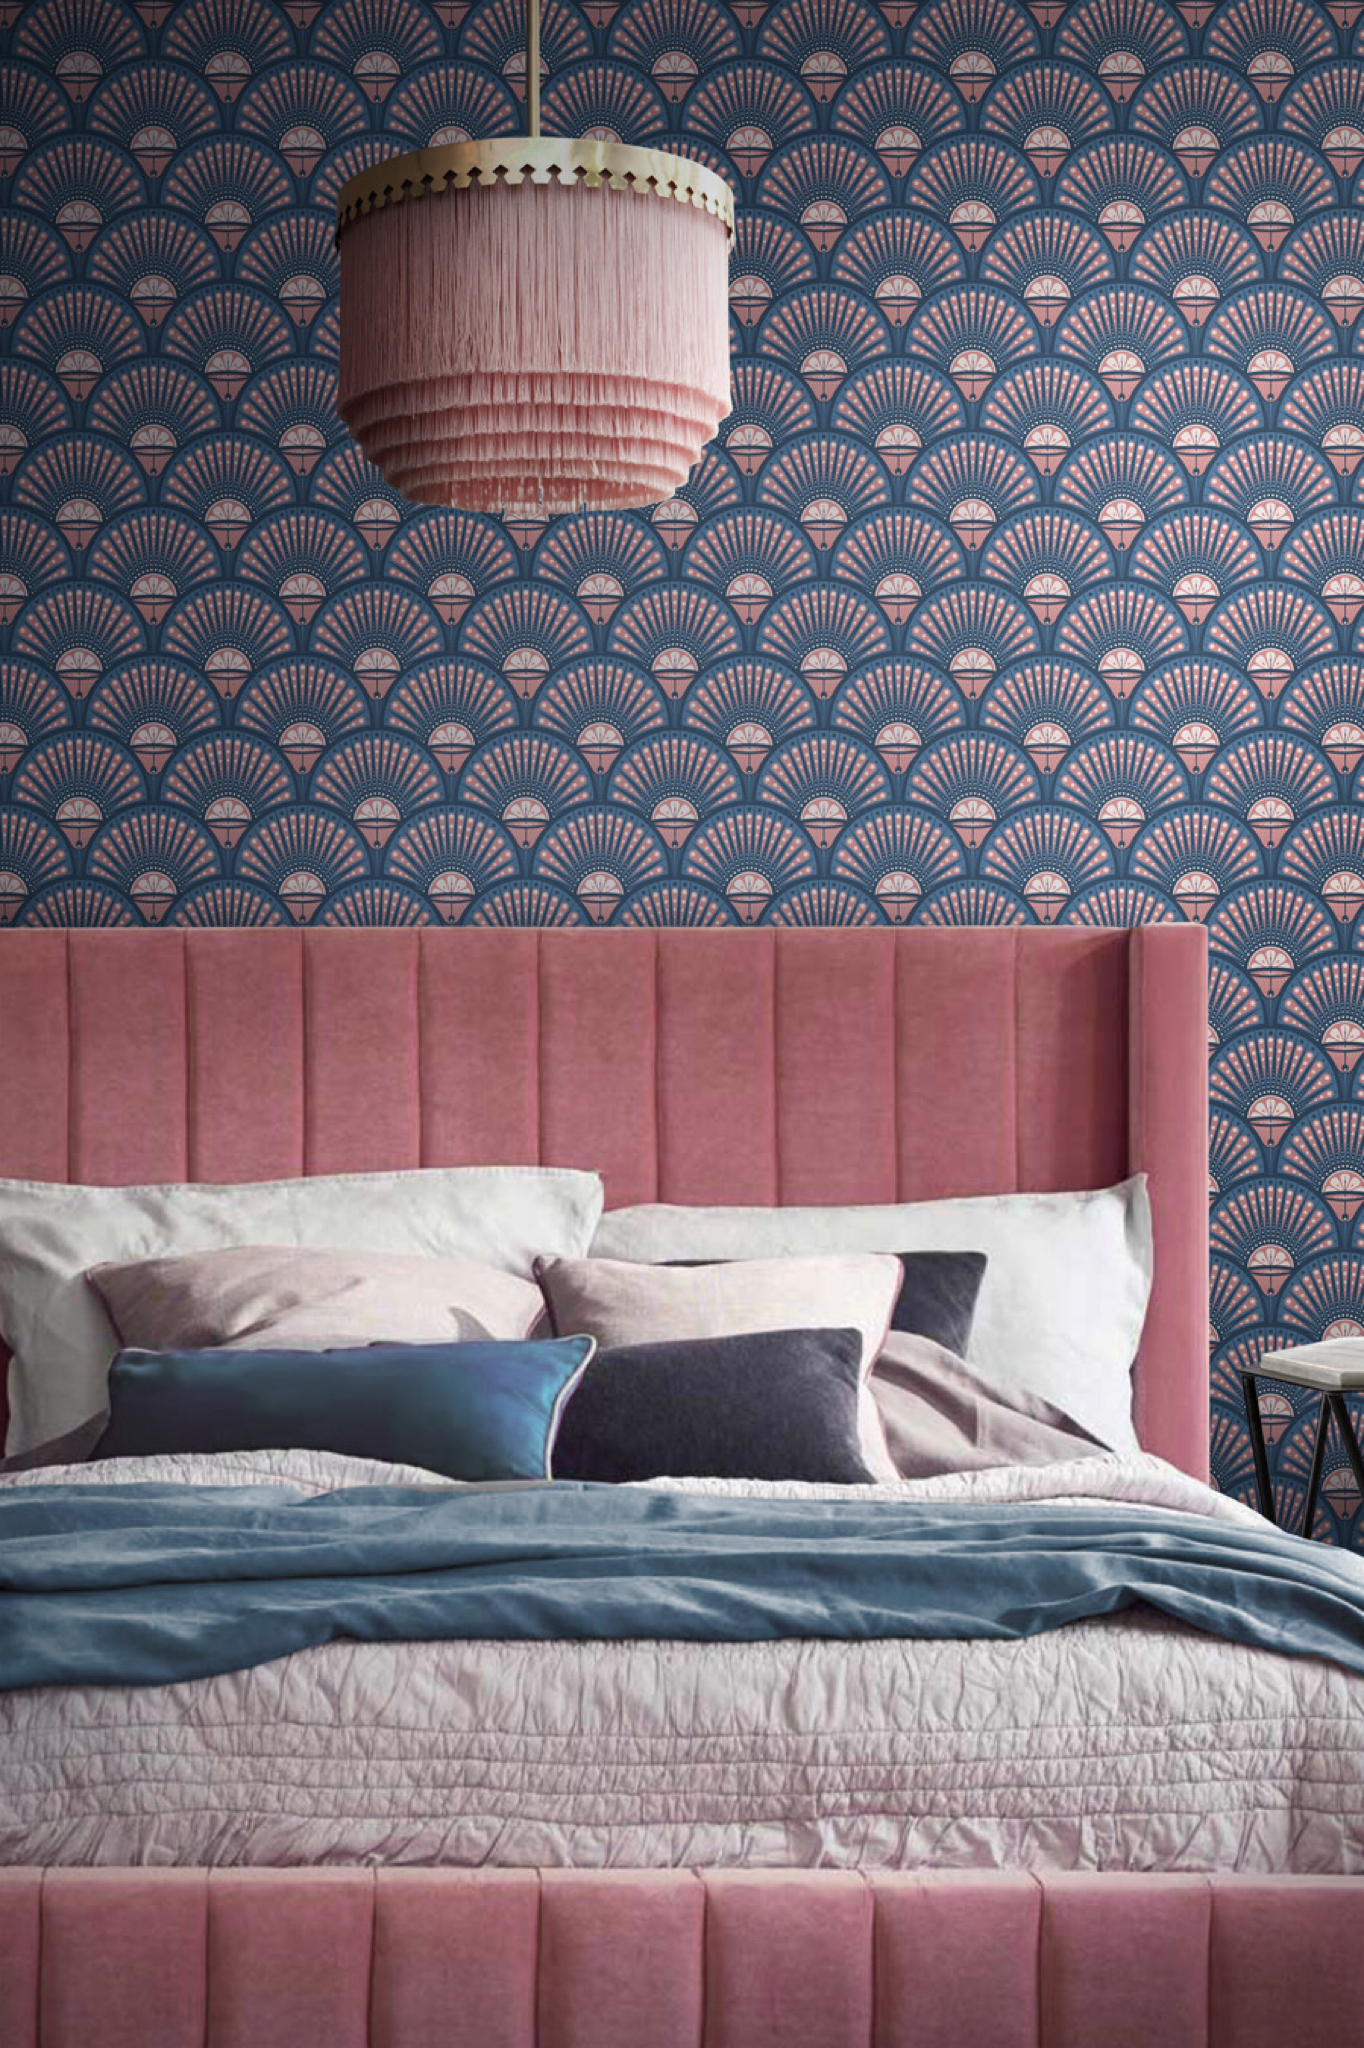 Best Deco Martini Blush In 2020 Bedroom Wallpaper Texture 400 x 300